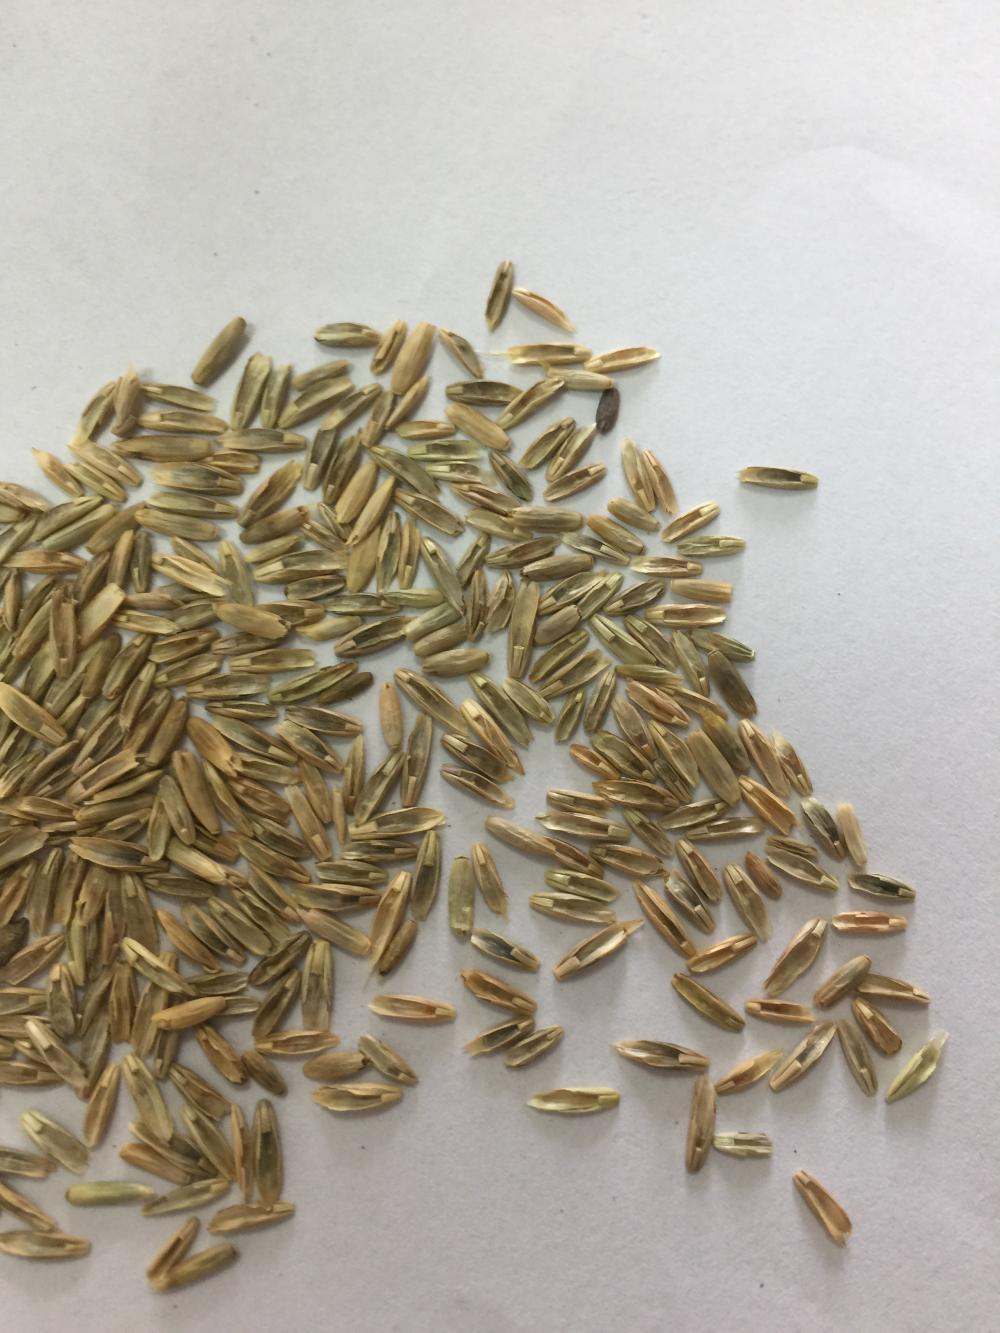 Annual ryegrass grass seeds